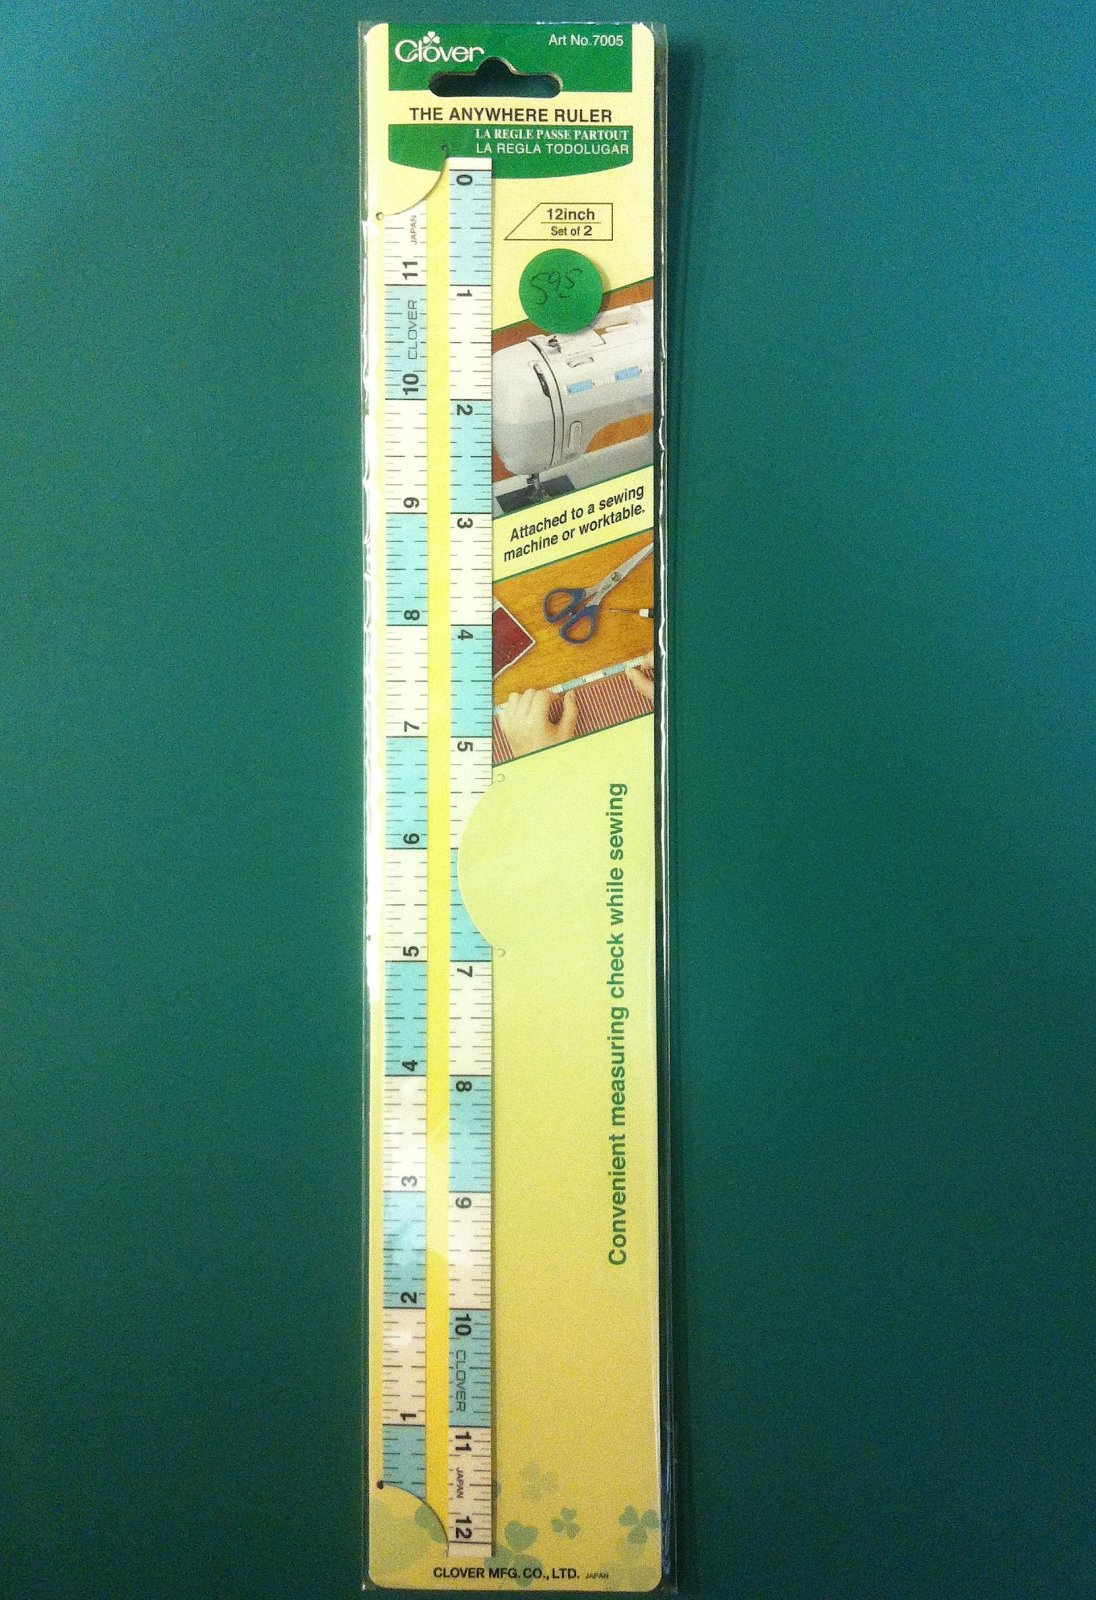 Clover Anywhere Ruler